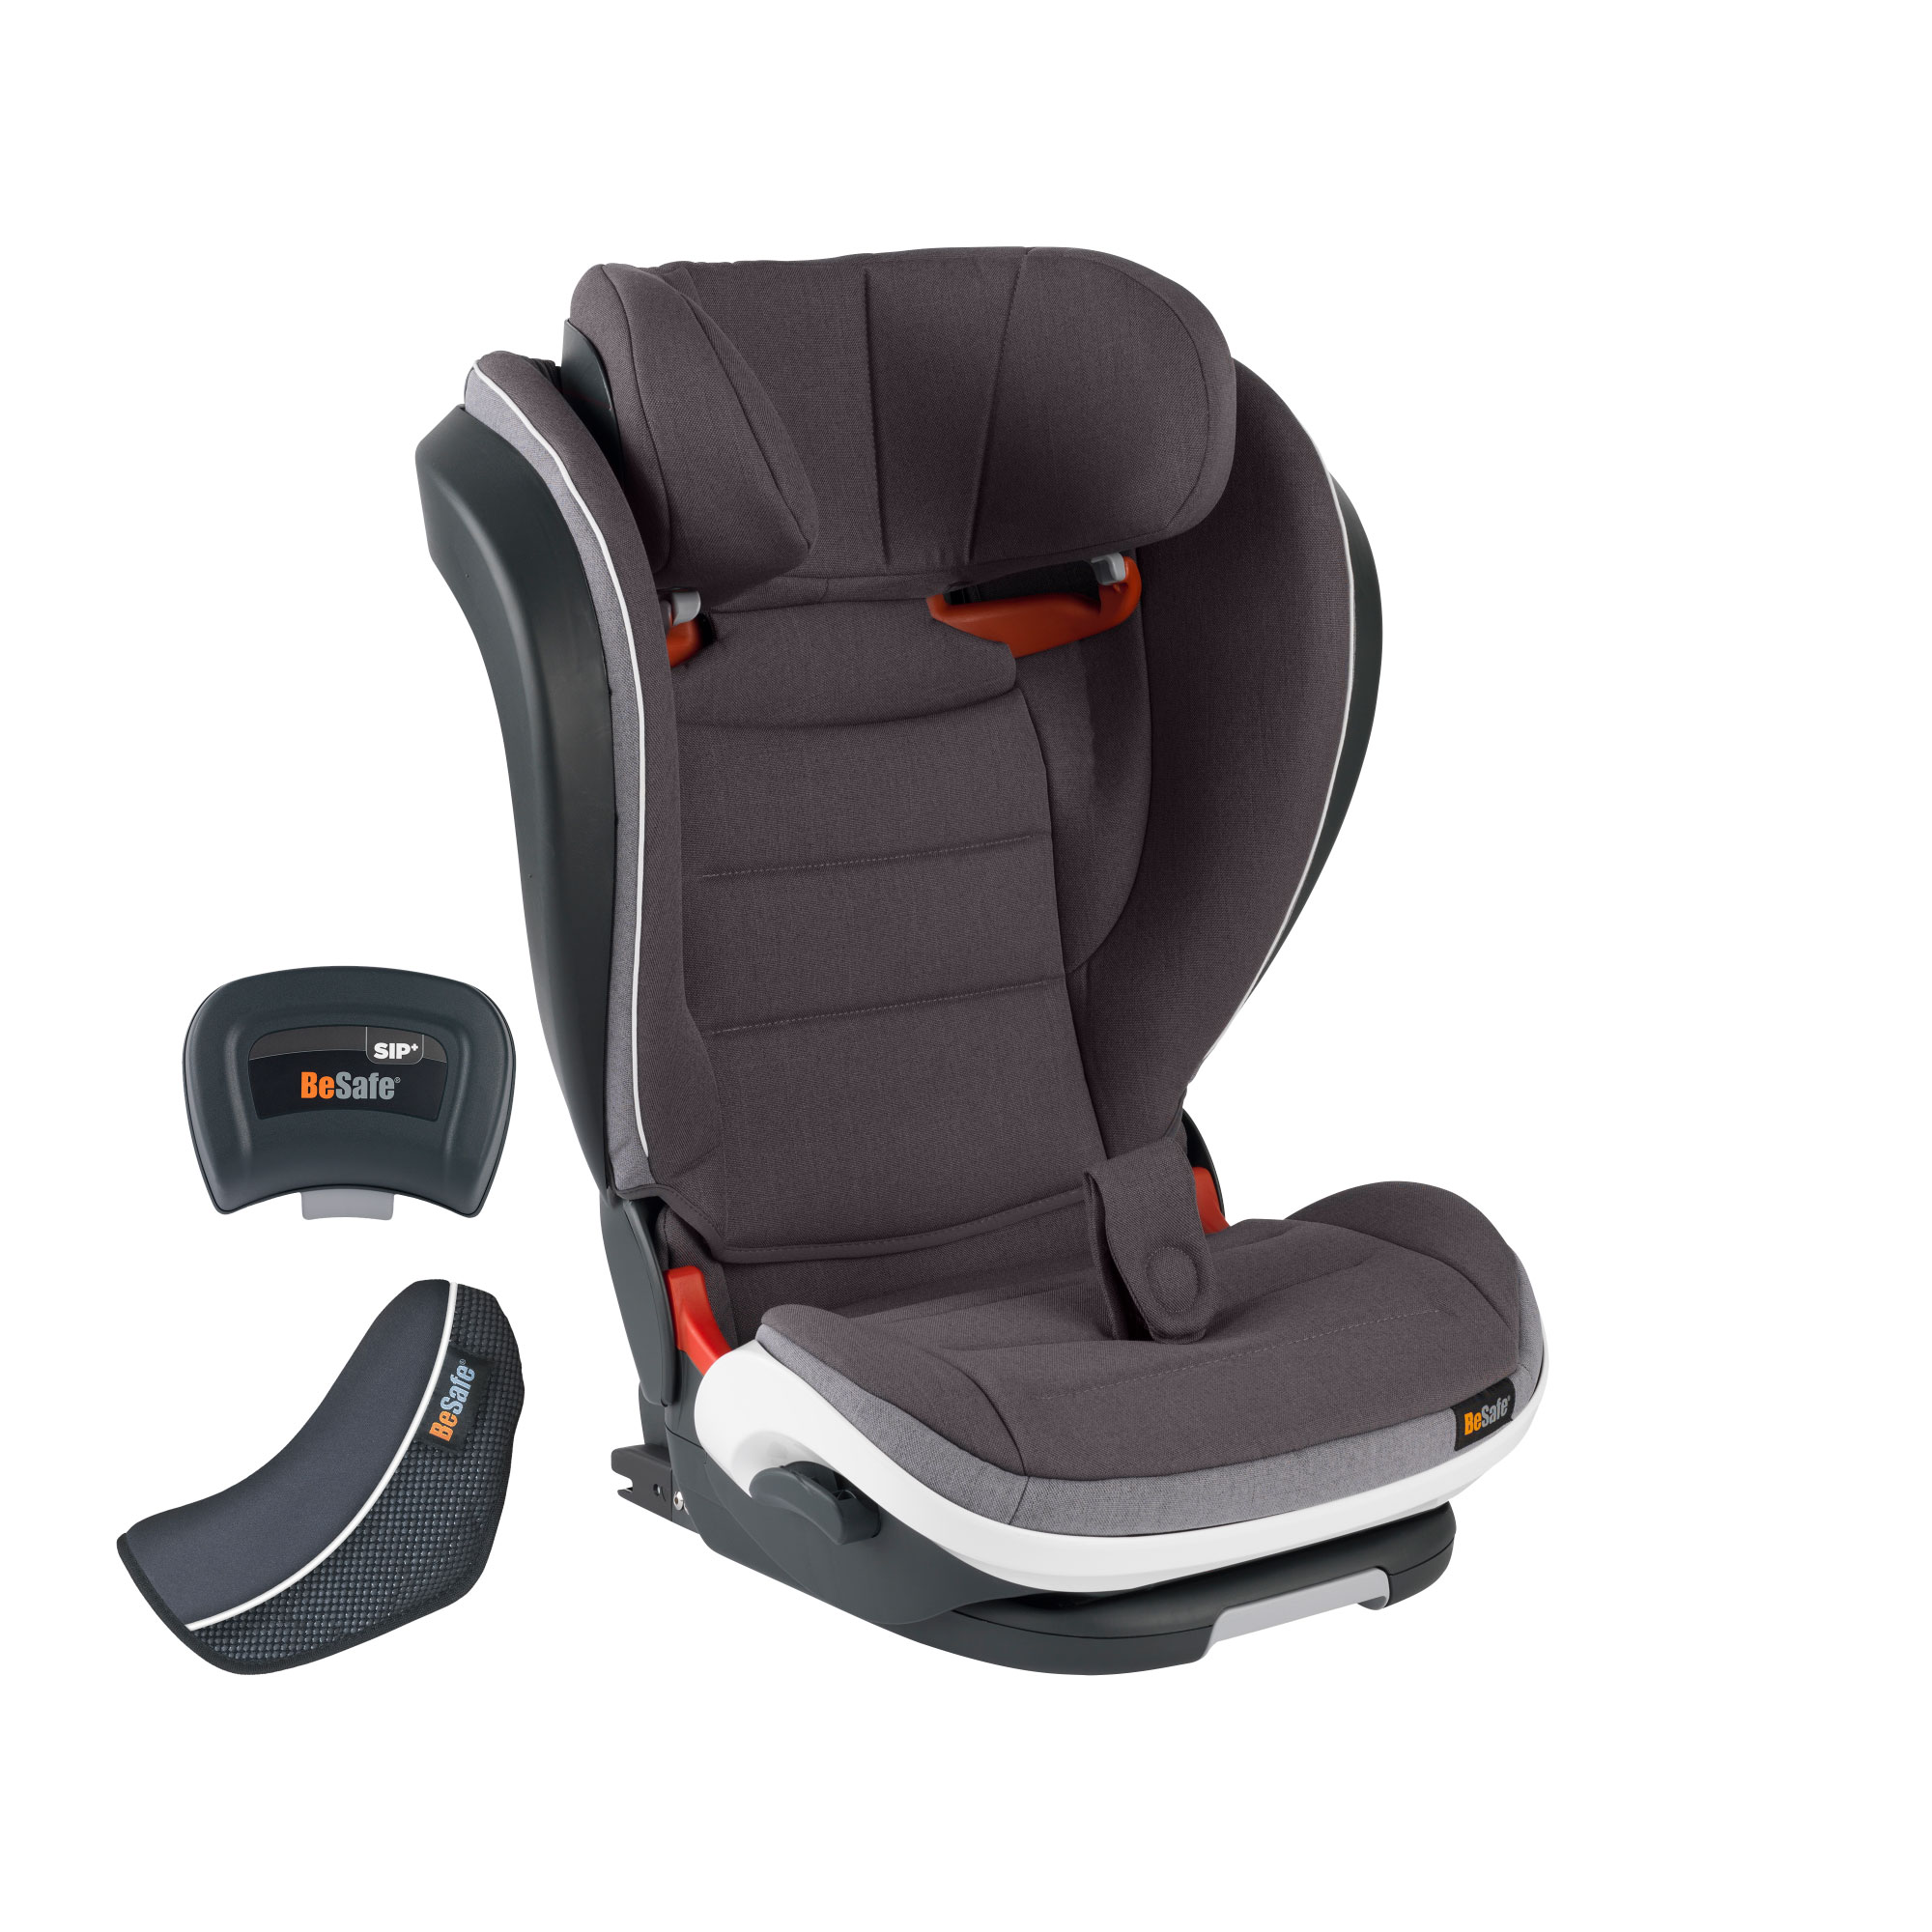 BeSafe iZi Flex: The first child car seat to meet new safety